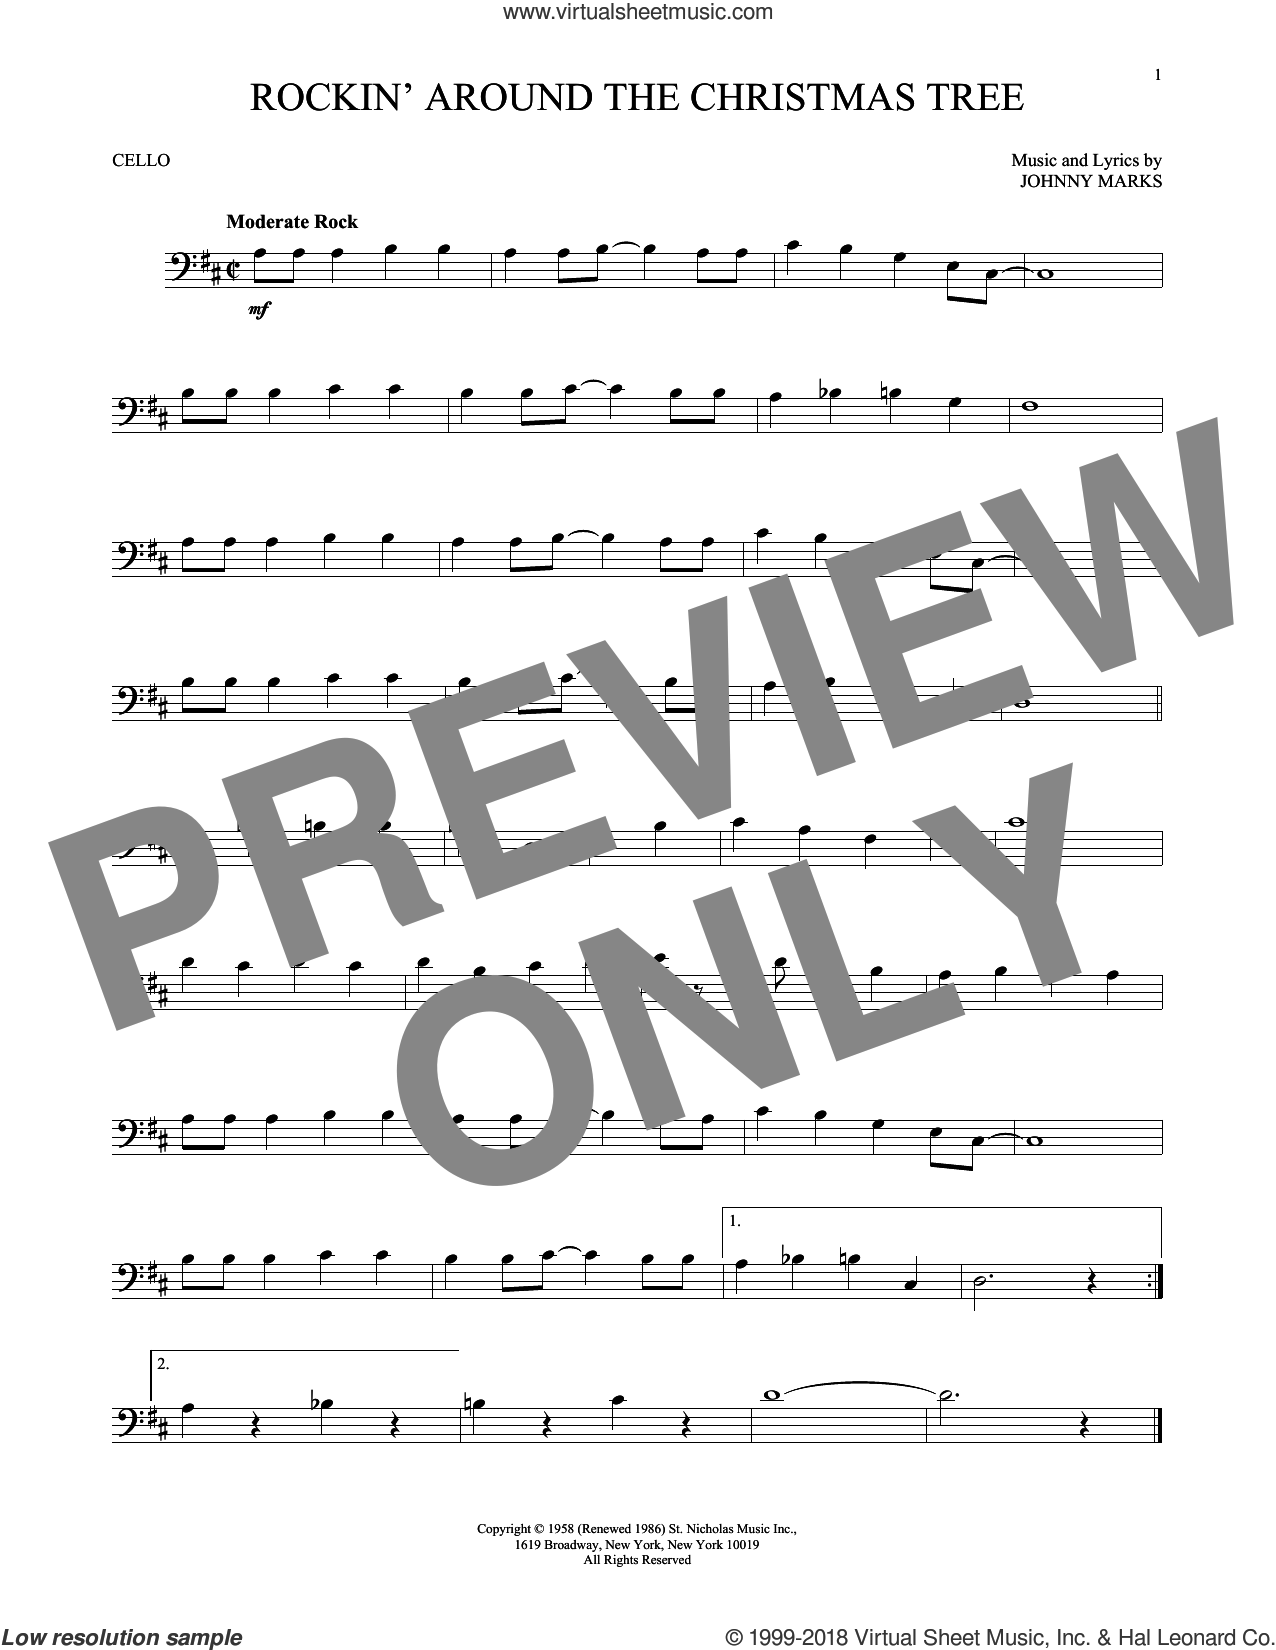 Rockin' Around The Christmas Tree sheet music for cello solo by Johnny Marks, intermediate skill level